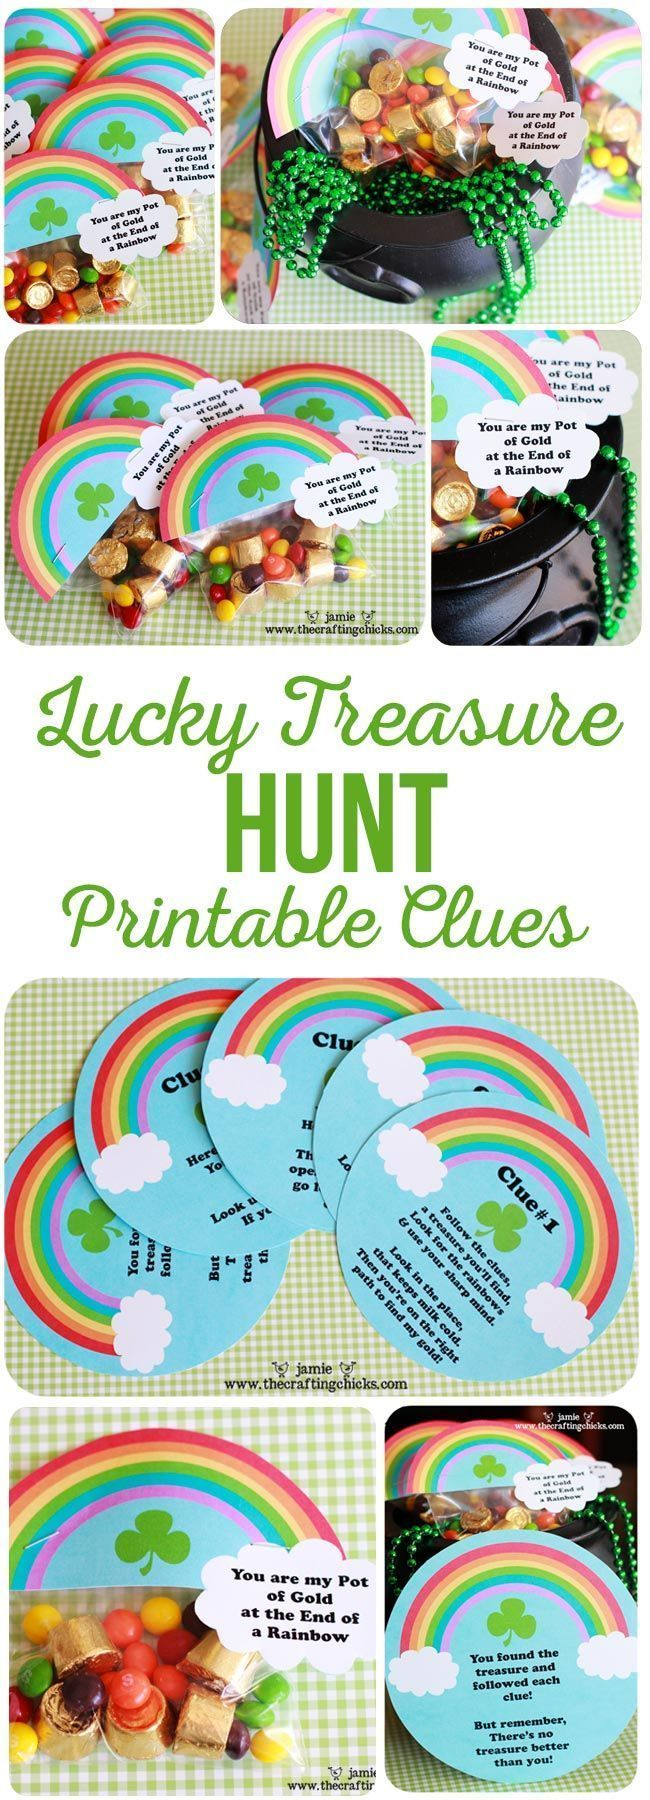 St. Patrick's Day Lucky Treasure Hunt & Treat Toppers. Printable clues for a Lucky Treasure Hunt. Fun for St. Patrick's Day! via /craftingchicks/